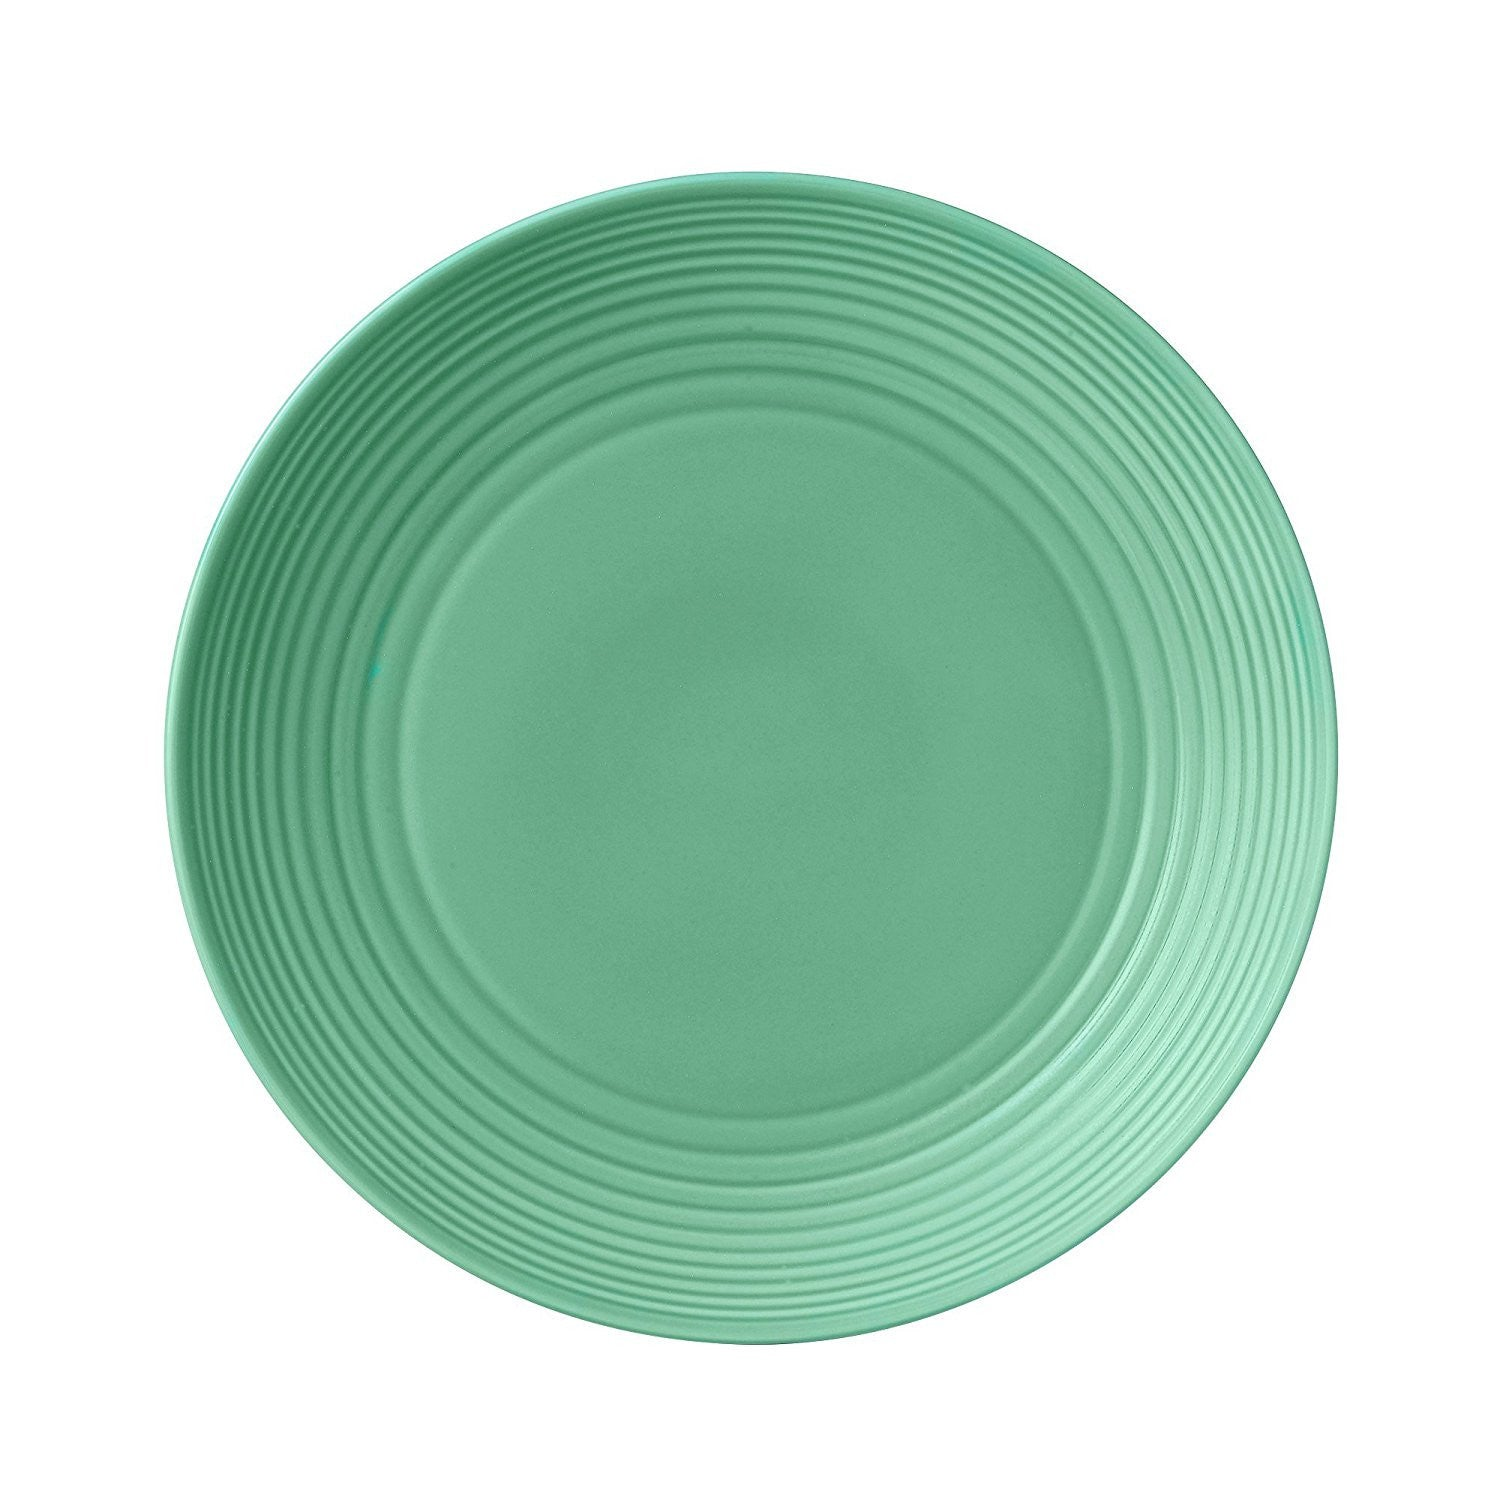 Royal Doulton Gordon Ramsay Maze Teal Dinner Plate 28cm - China Chaps